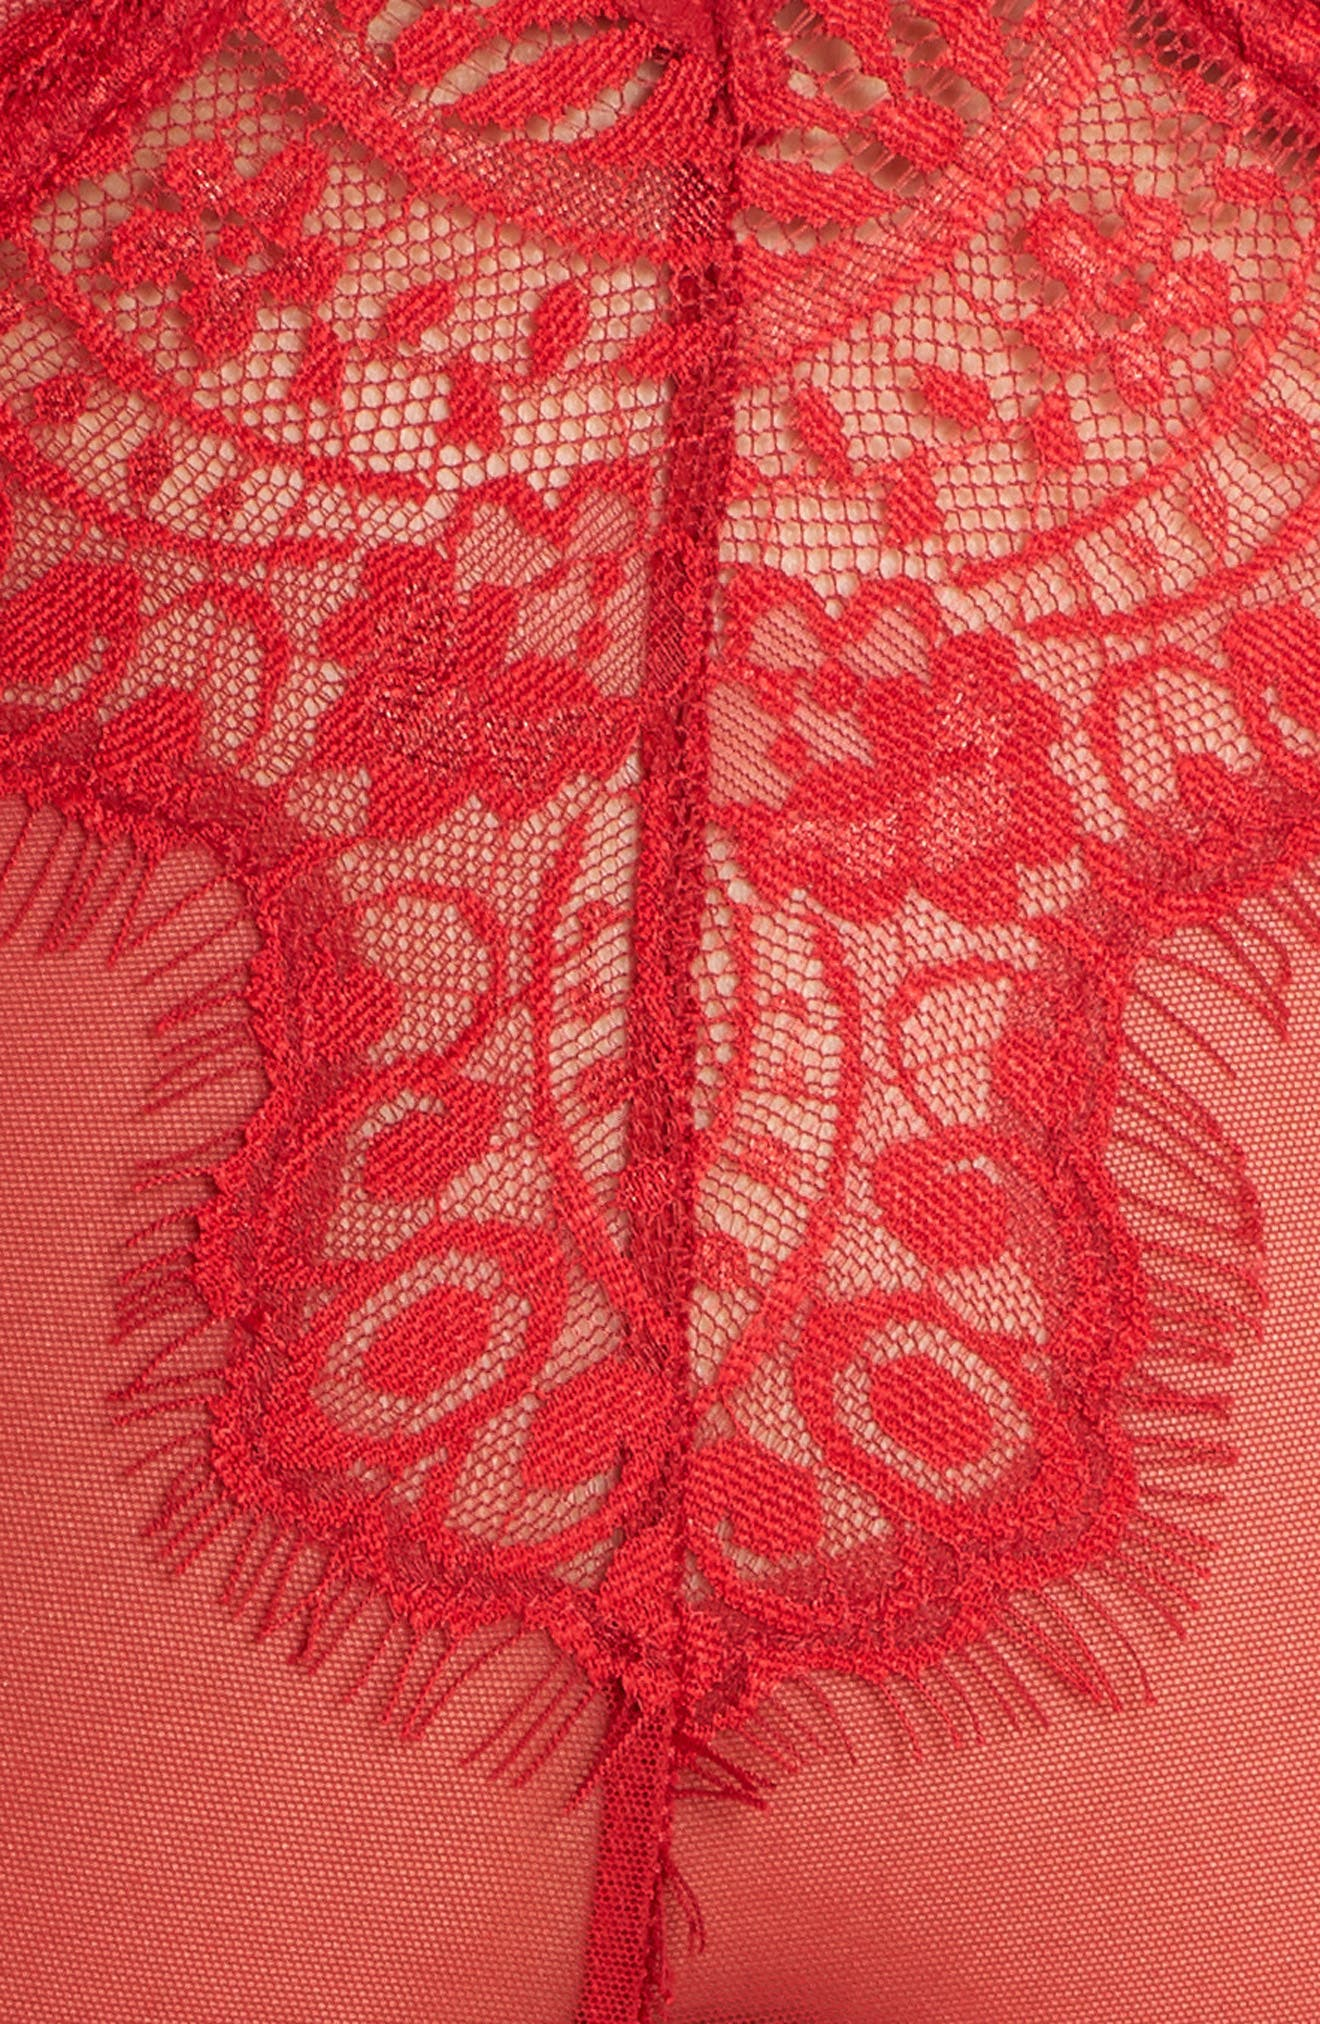 Eyelash Curves Lace Teddy,                             Alternate thumbnail 5, color,                             RED